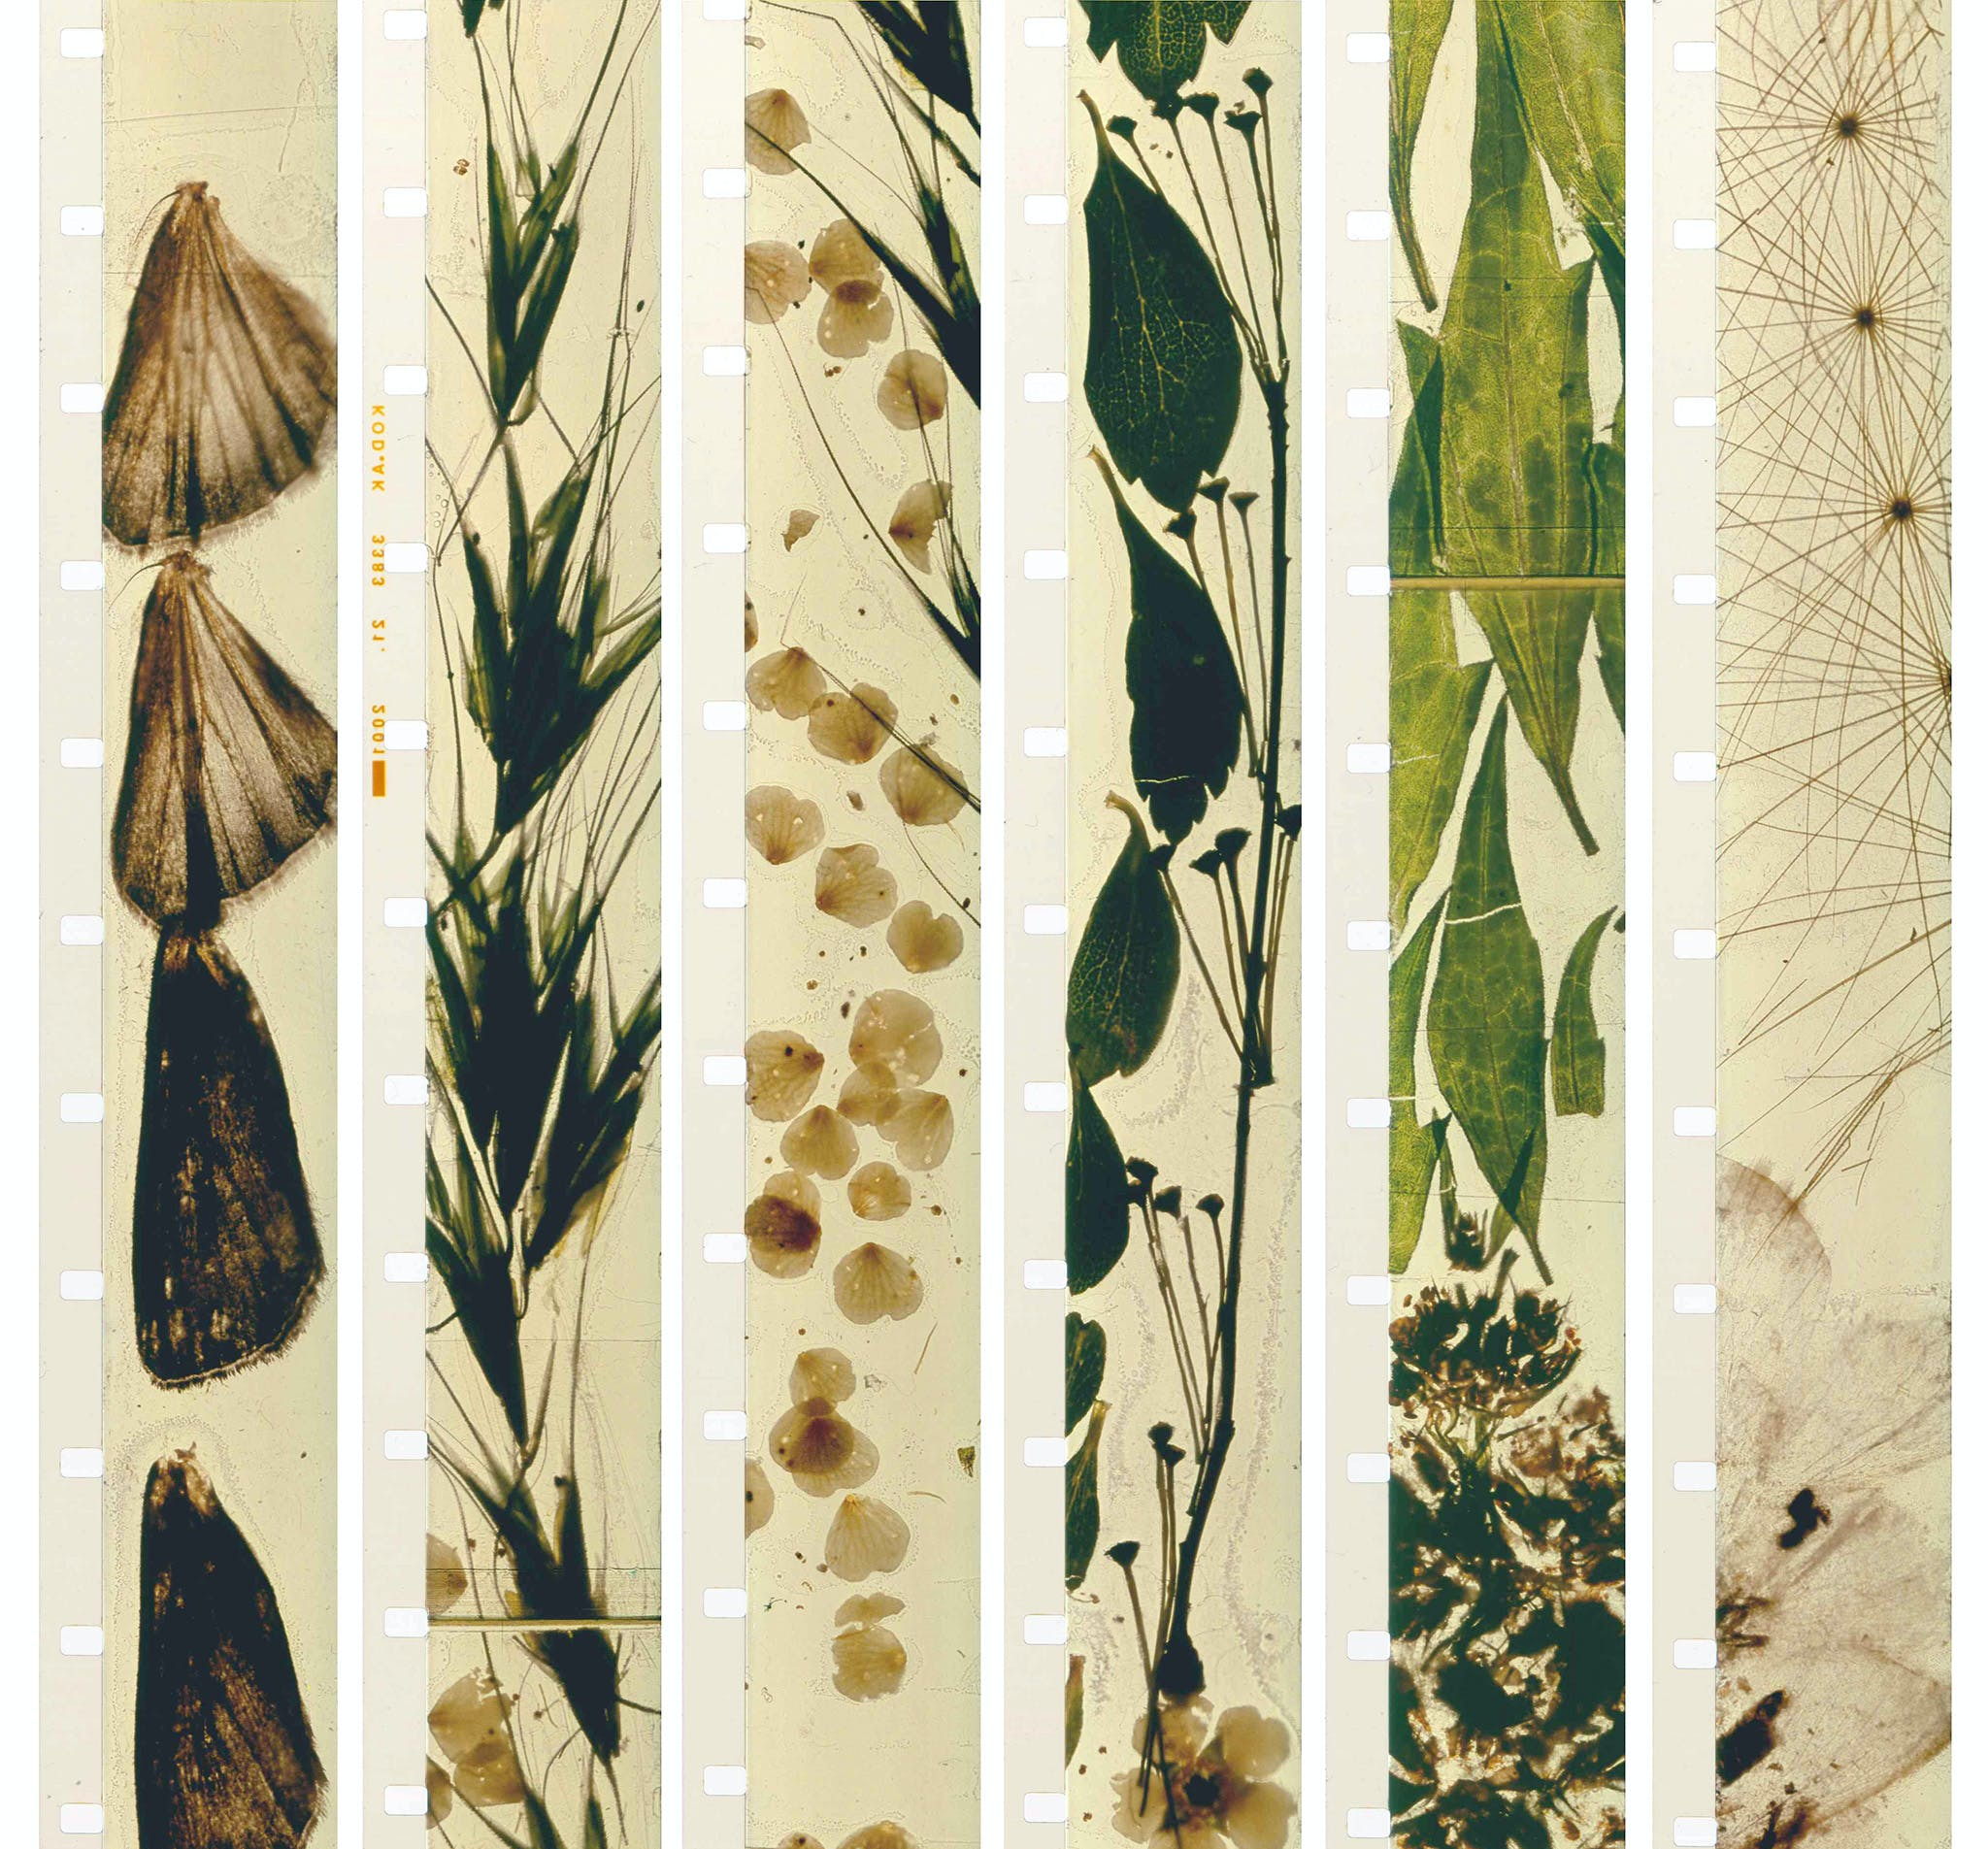 Stan Brakhage, Mothlight, 1963 (film strips)